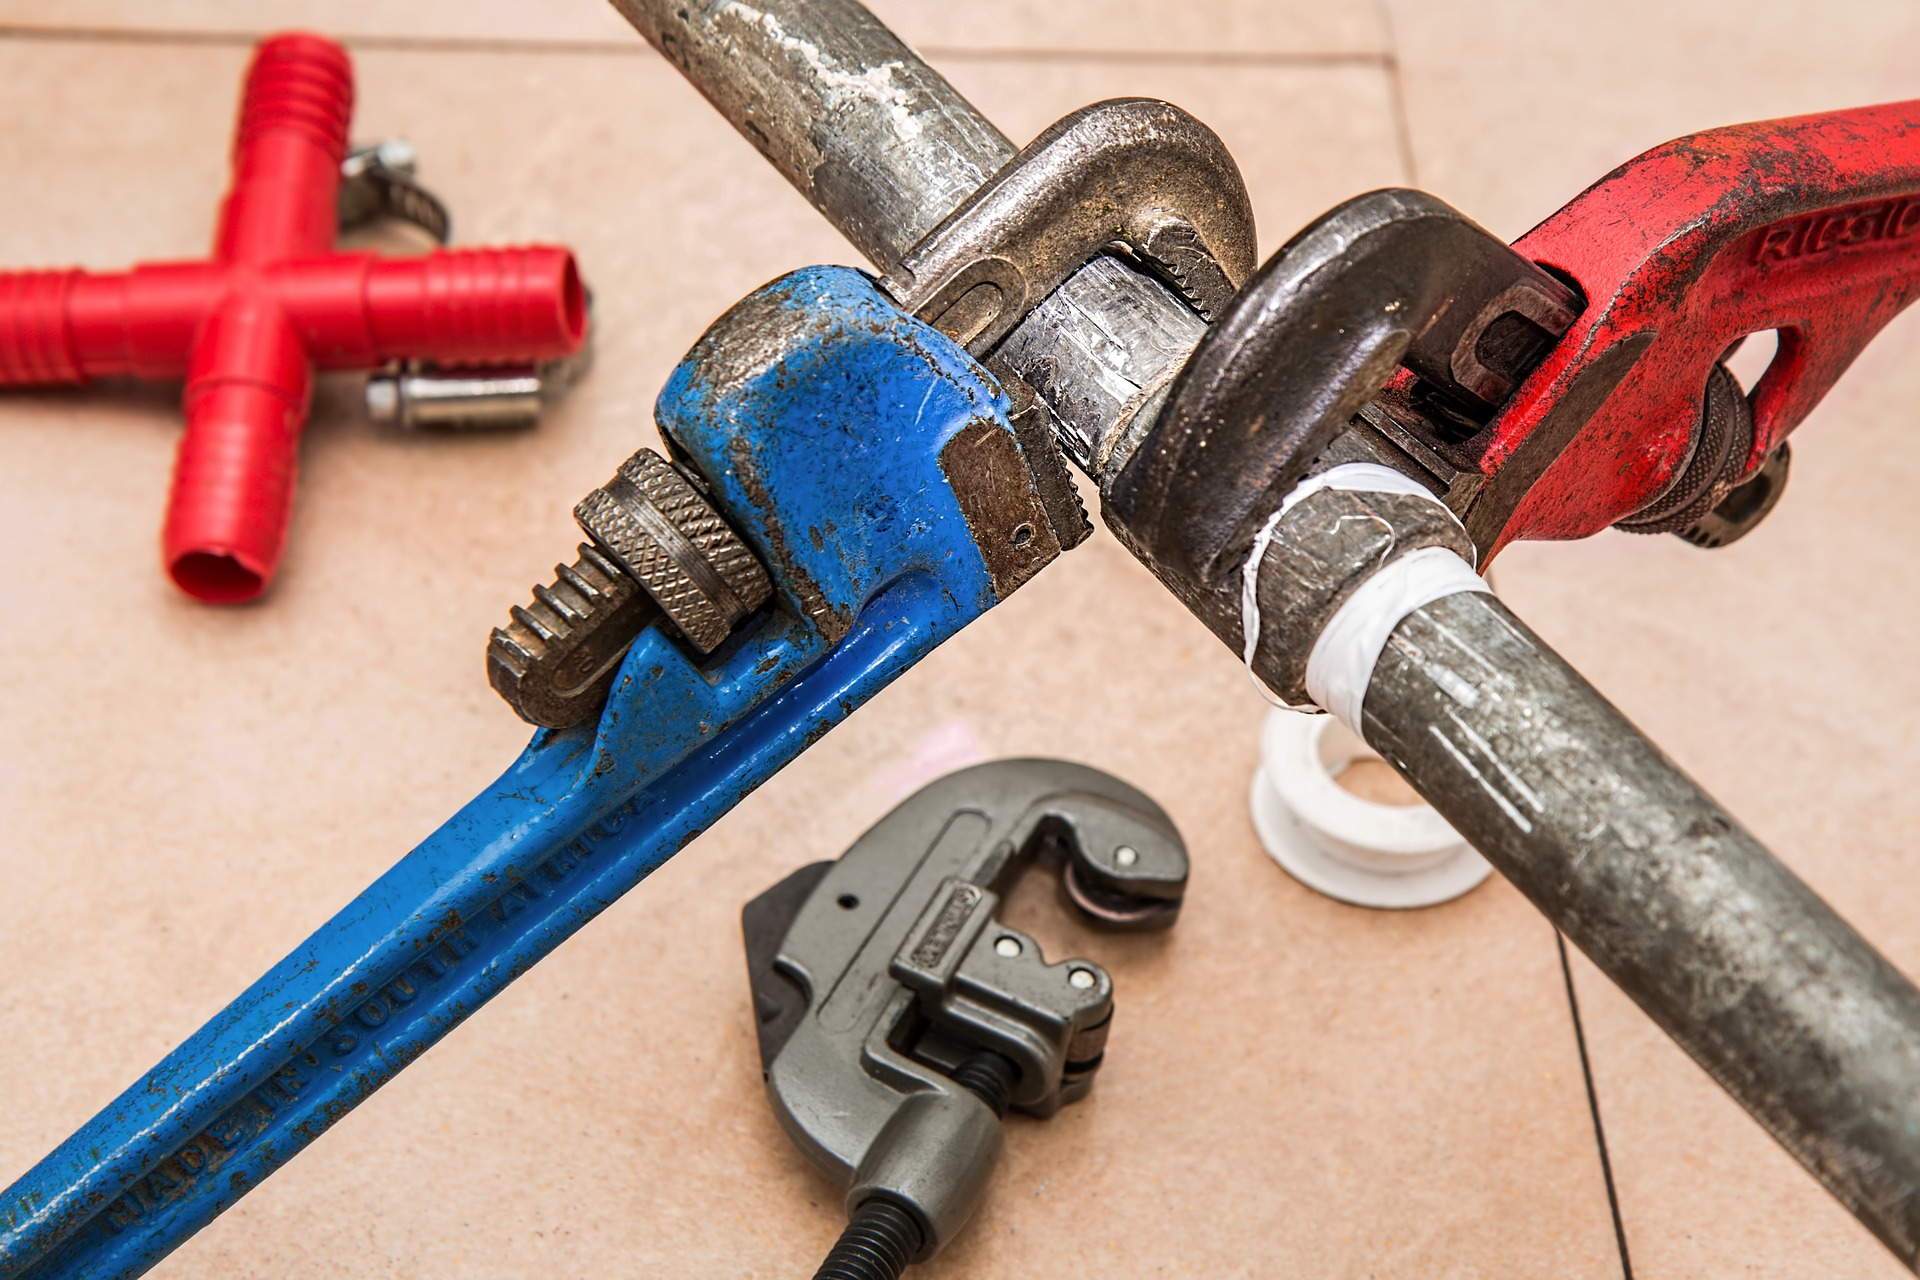 THE PLUMBING SERVICES YOU NEED